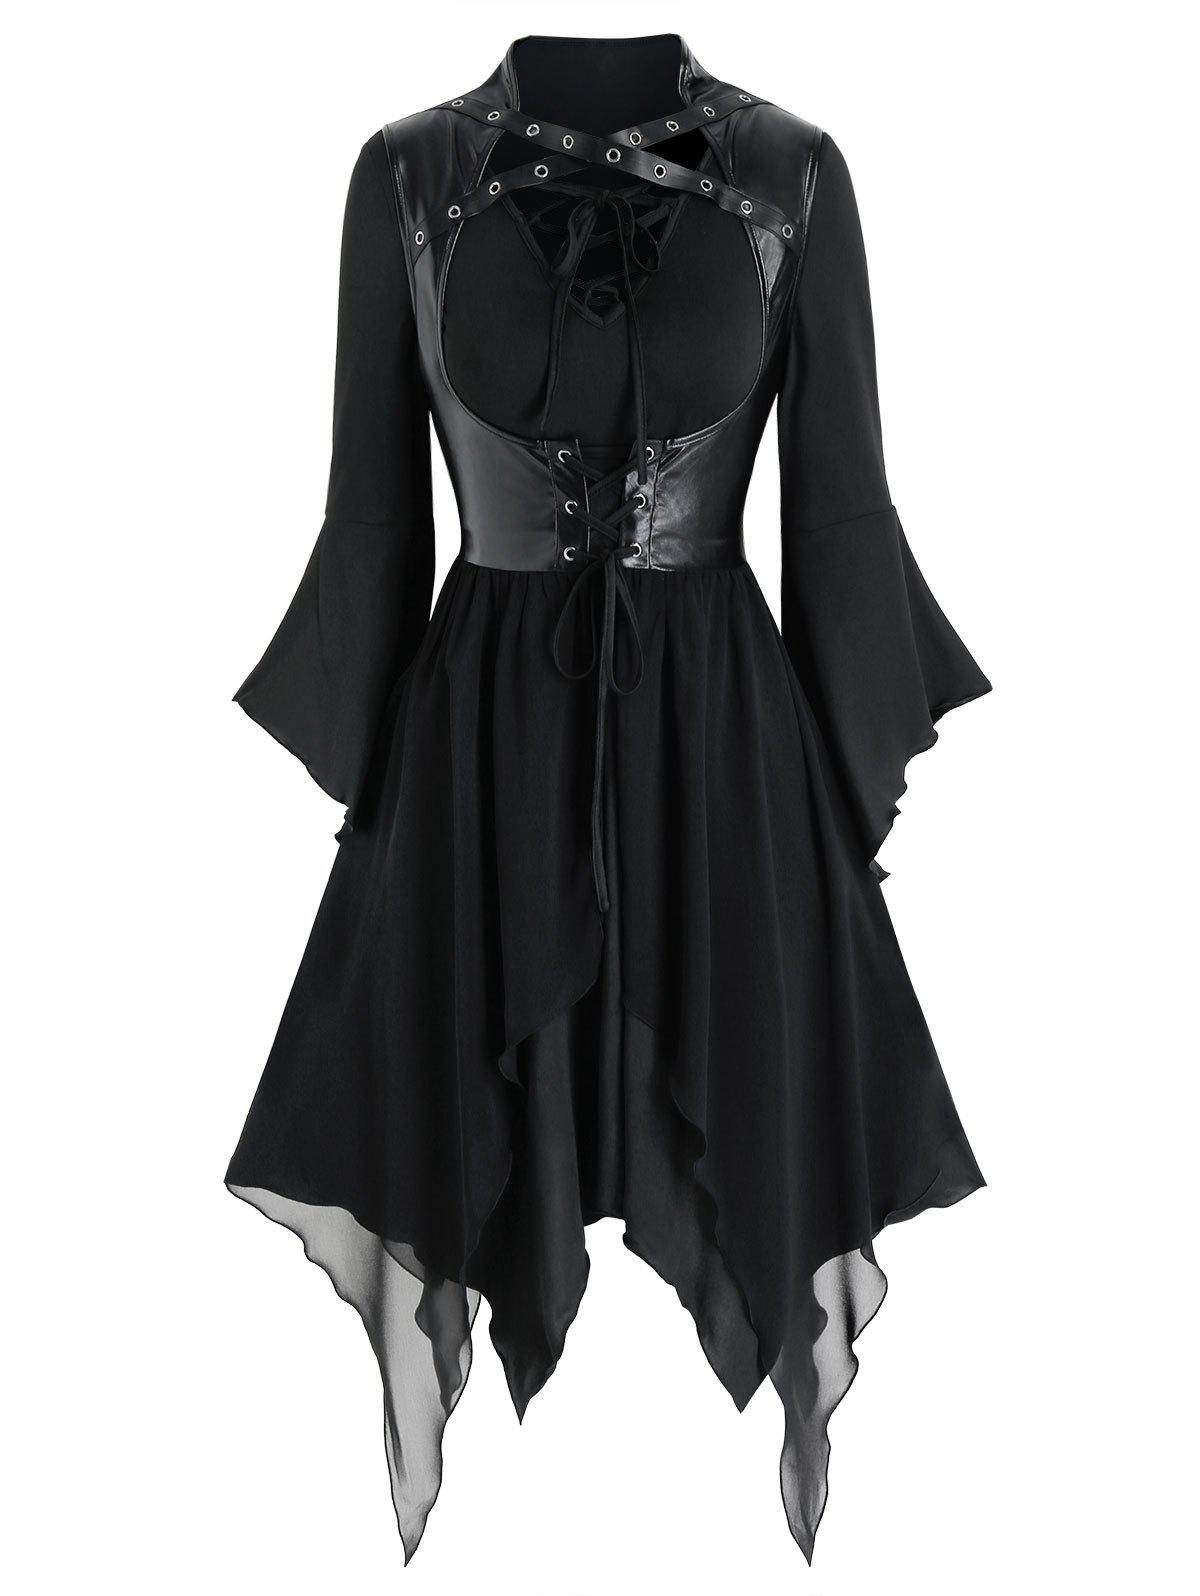 Latest Lace-up Handkerchief Dress and Faux Leather Gothic Vest